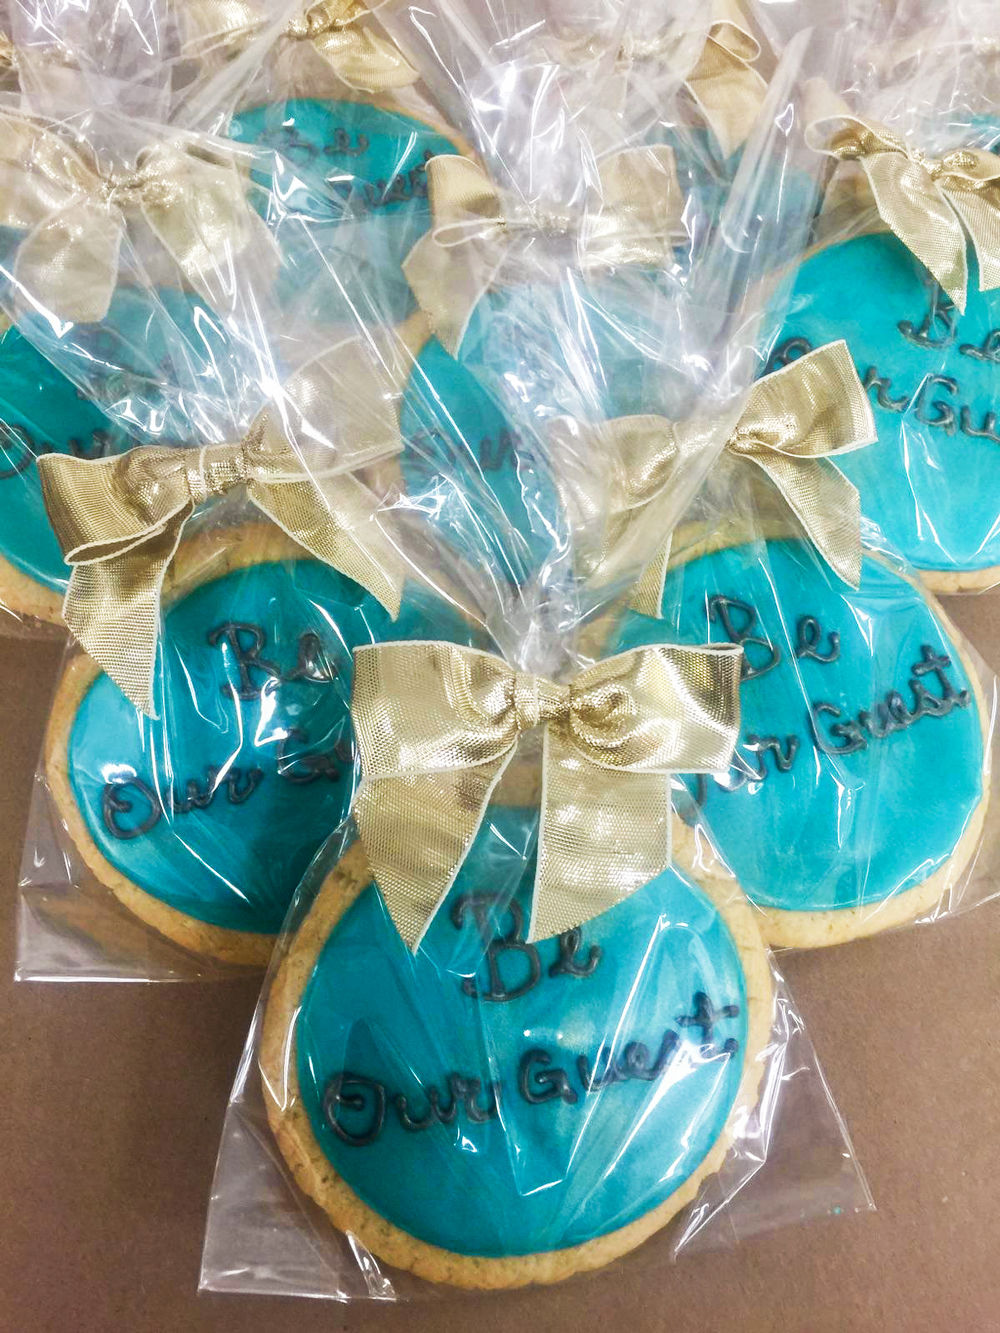 Be our guest cookies for Beauty and the Beast event in Chicago, IL